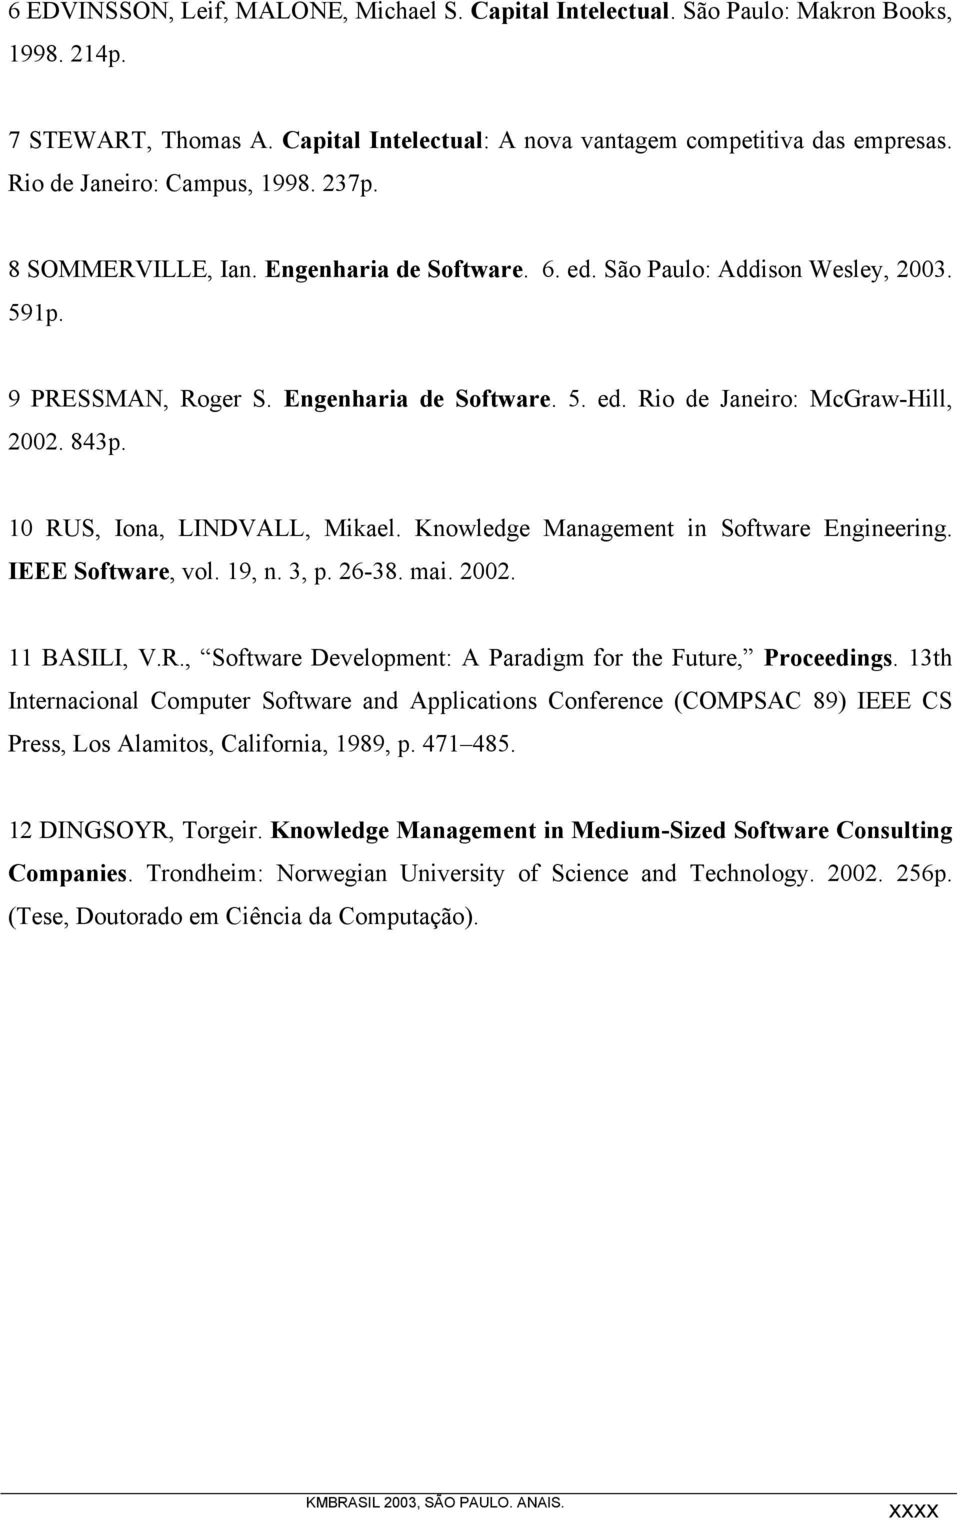 843p. 10 RUS, Iona, LINDVALL, Mikael. Knowledge Management in Software Engineering. IEEE Software, vol. 19, n. 3, p. 26-38. mai. 2002. 11 BASILI, V.R., Software Development: A Paradigm for the Future, Proceedings.